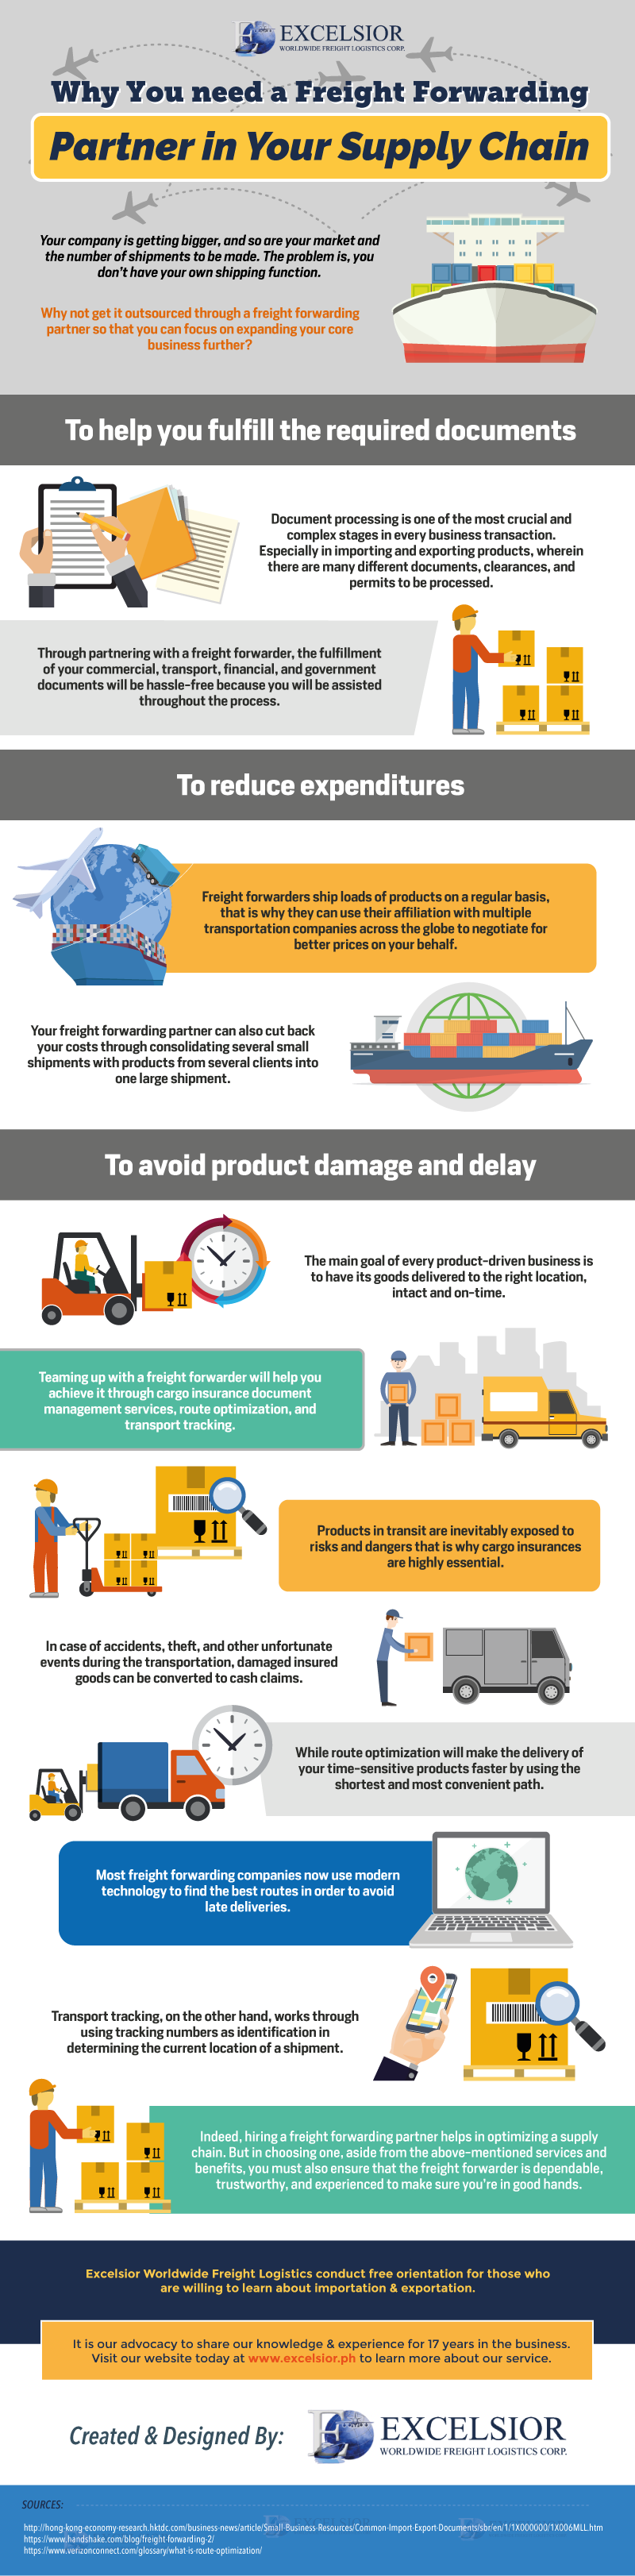 Why Reinvent the Wheel: Advantages of Tieing Up with an Experienced Freight Forwarding Partner - Infographic